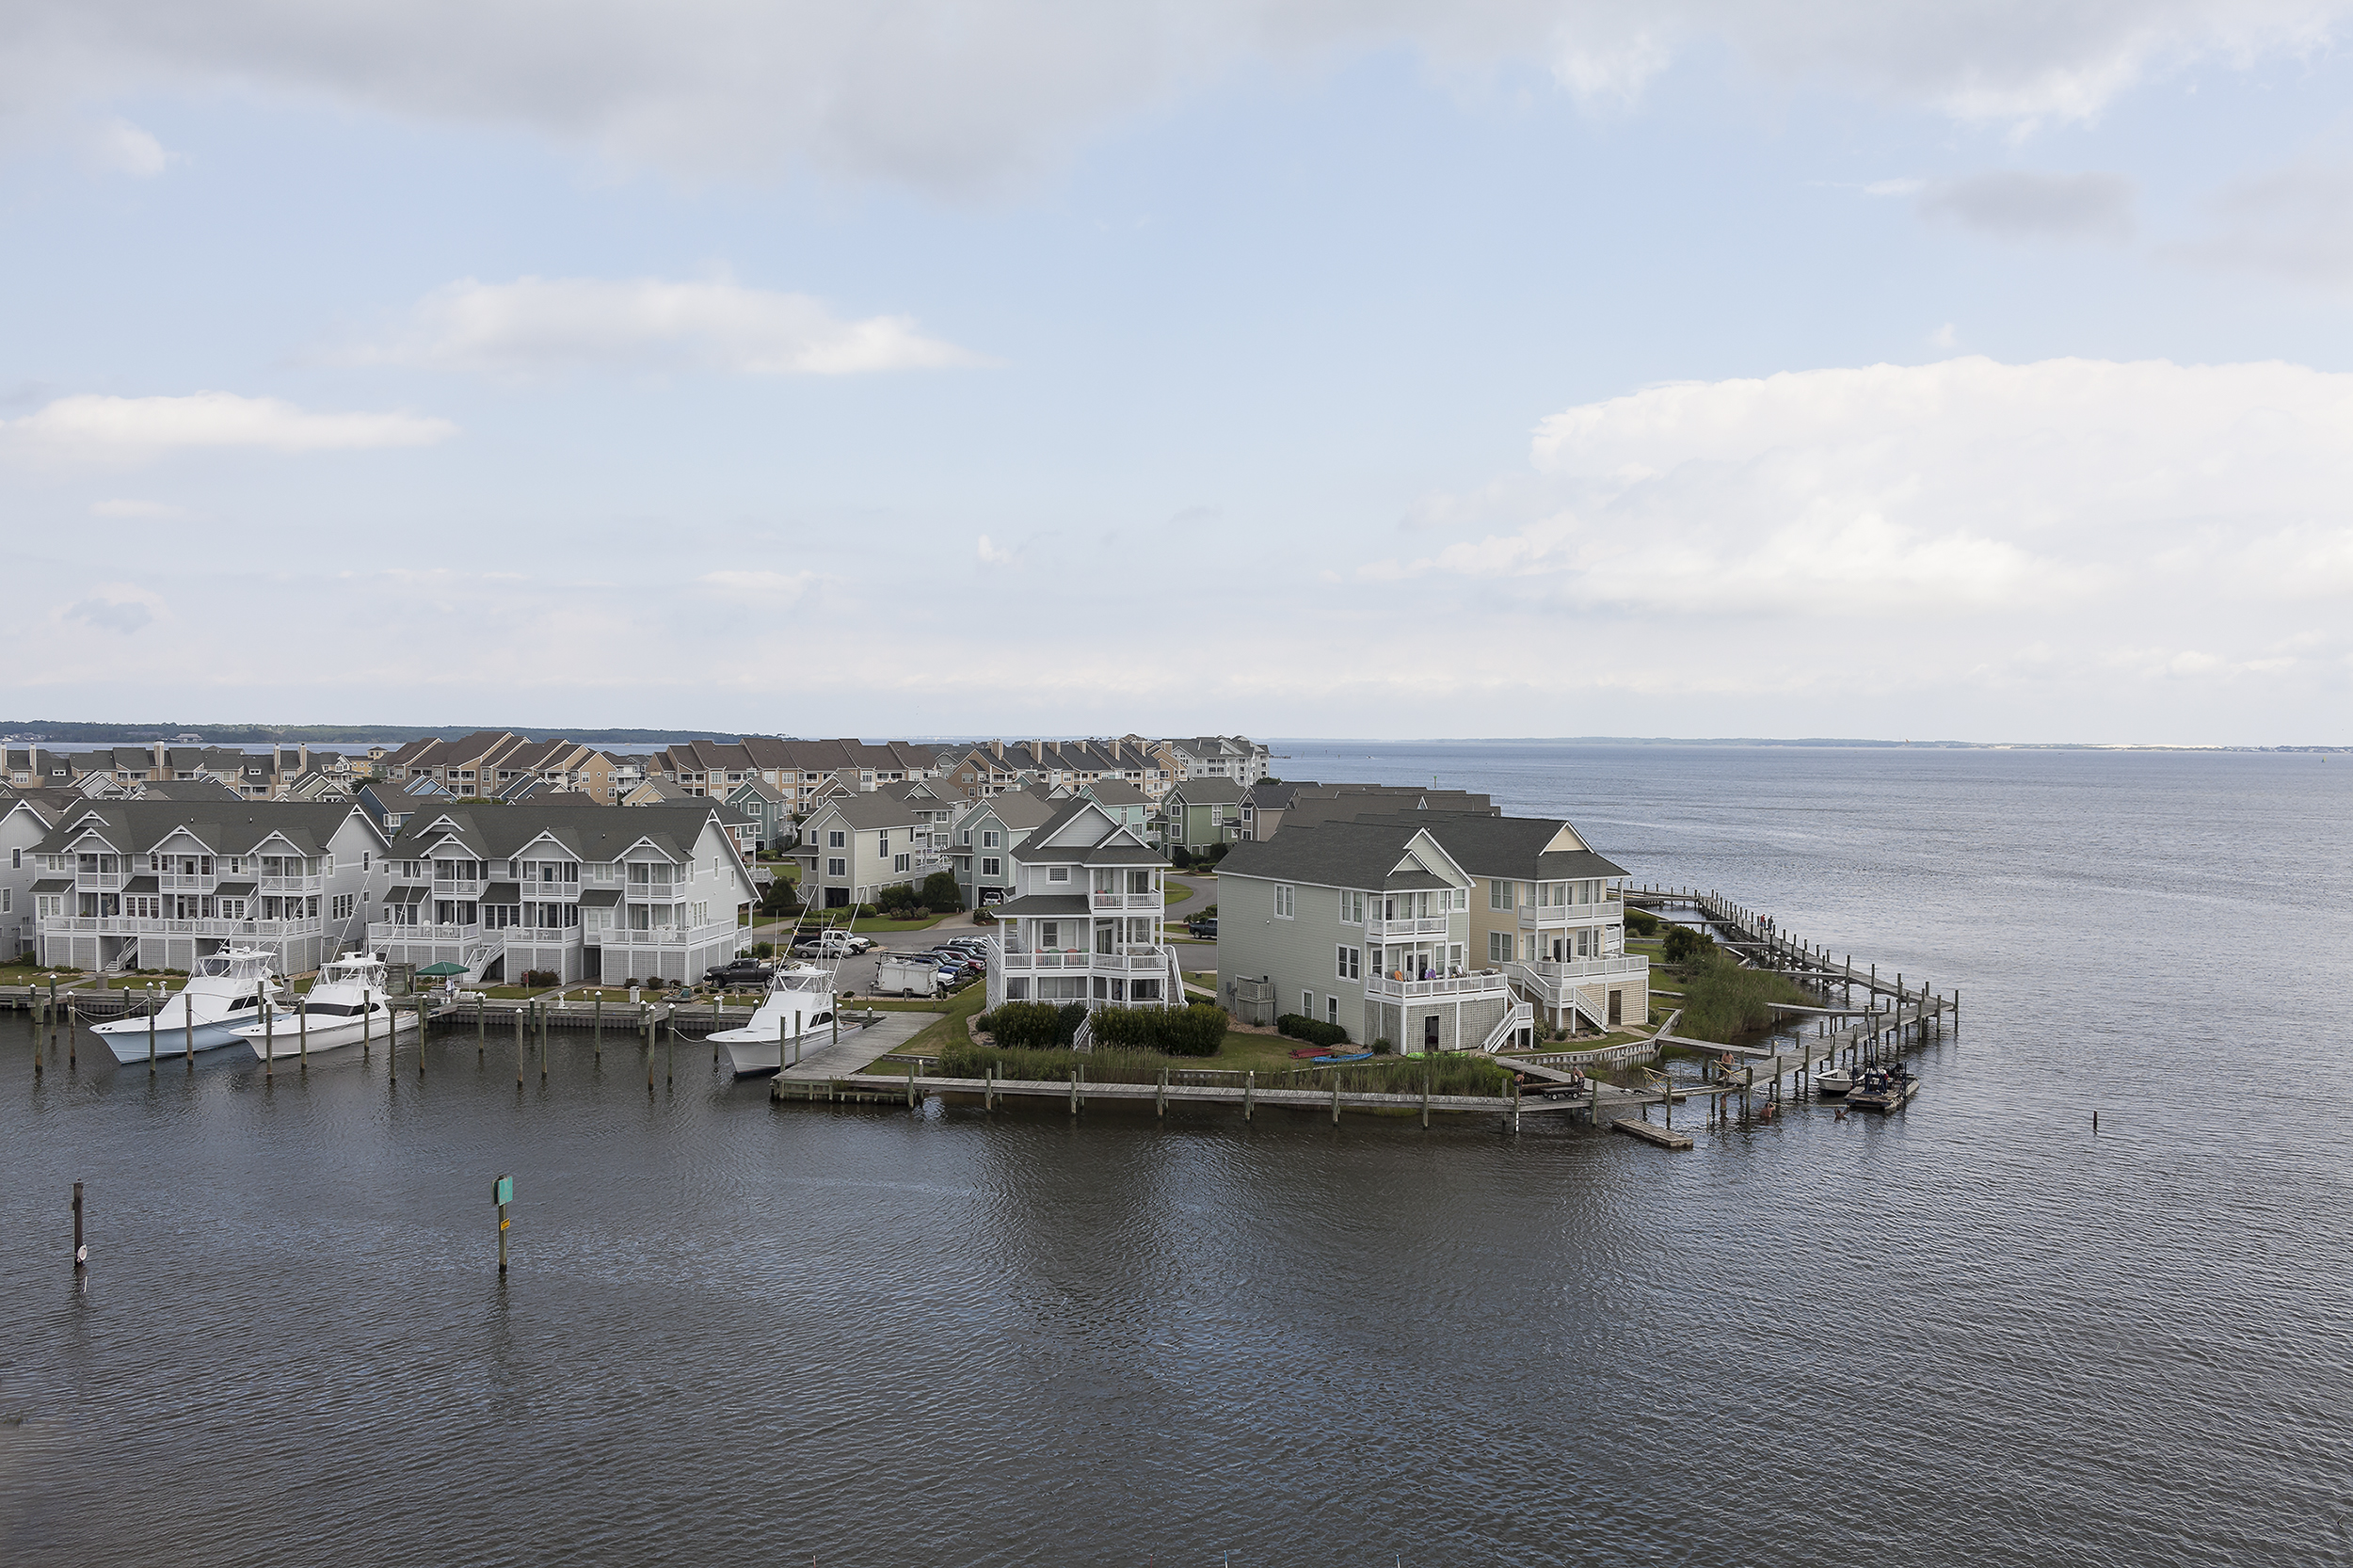 18. Pirates Cove Development, Roanoke Island, Manteo, NC